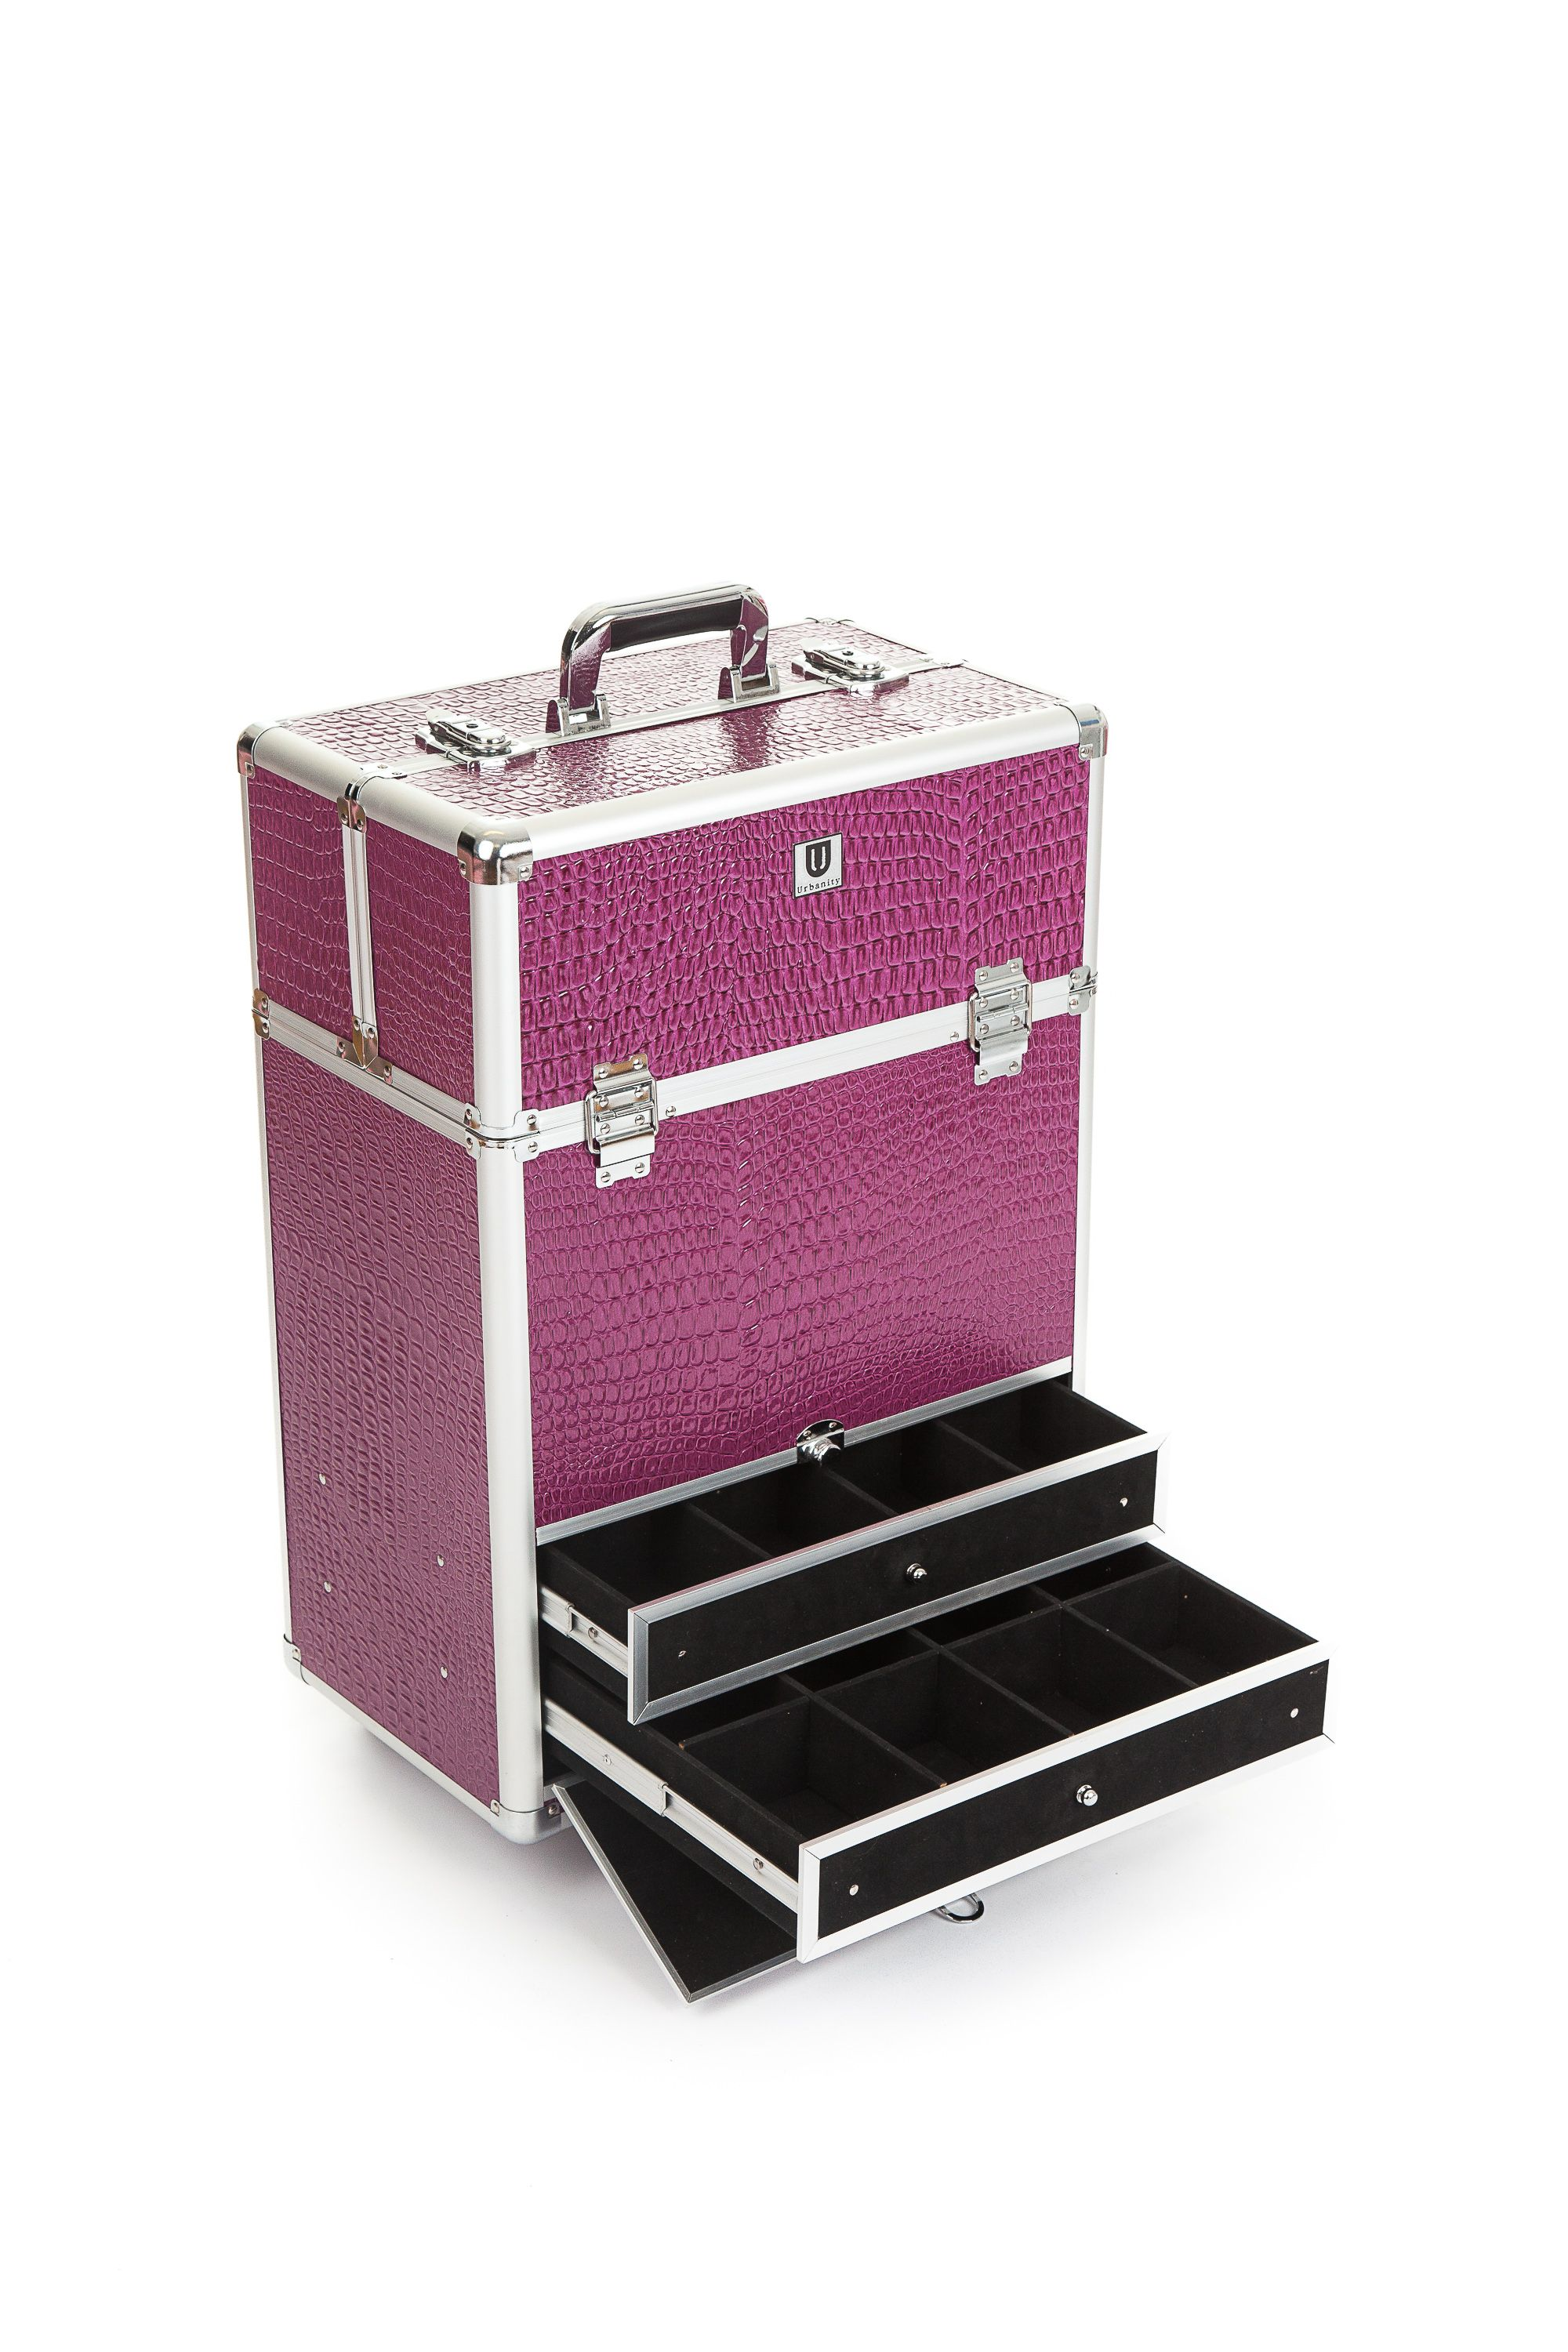 Urbanity Purple Croc Nail Pro Trolley with slide out